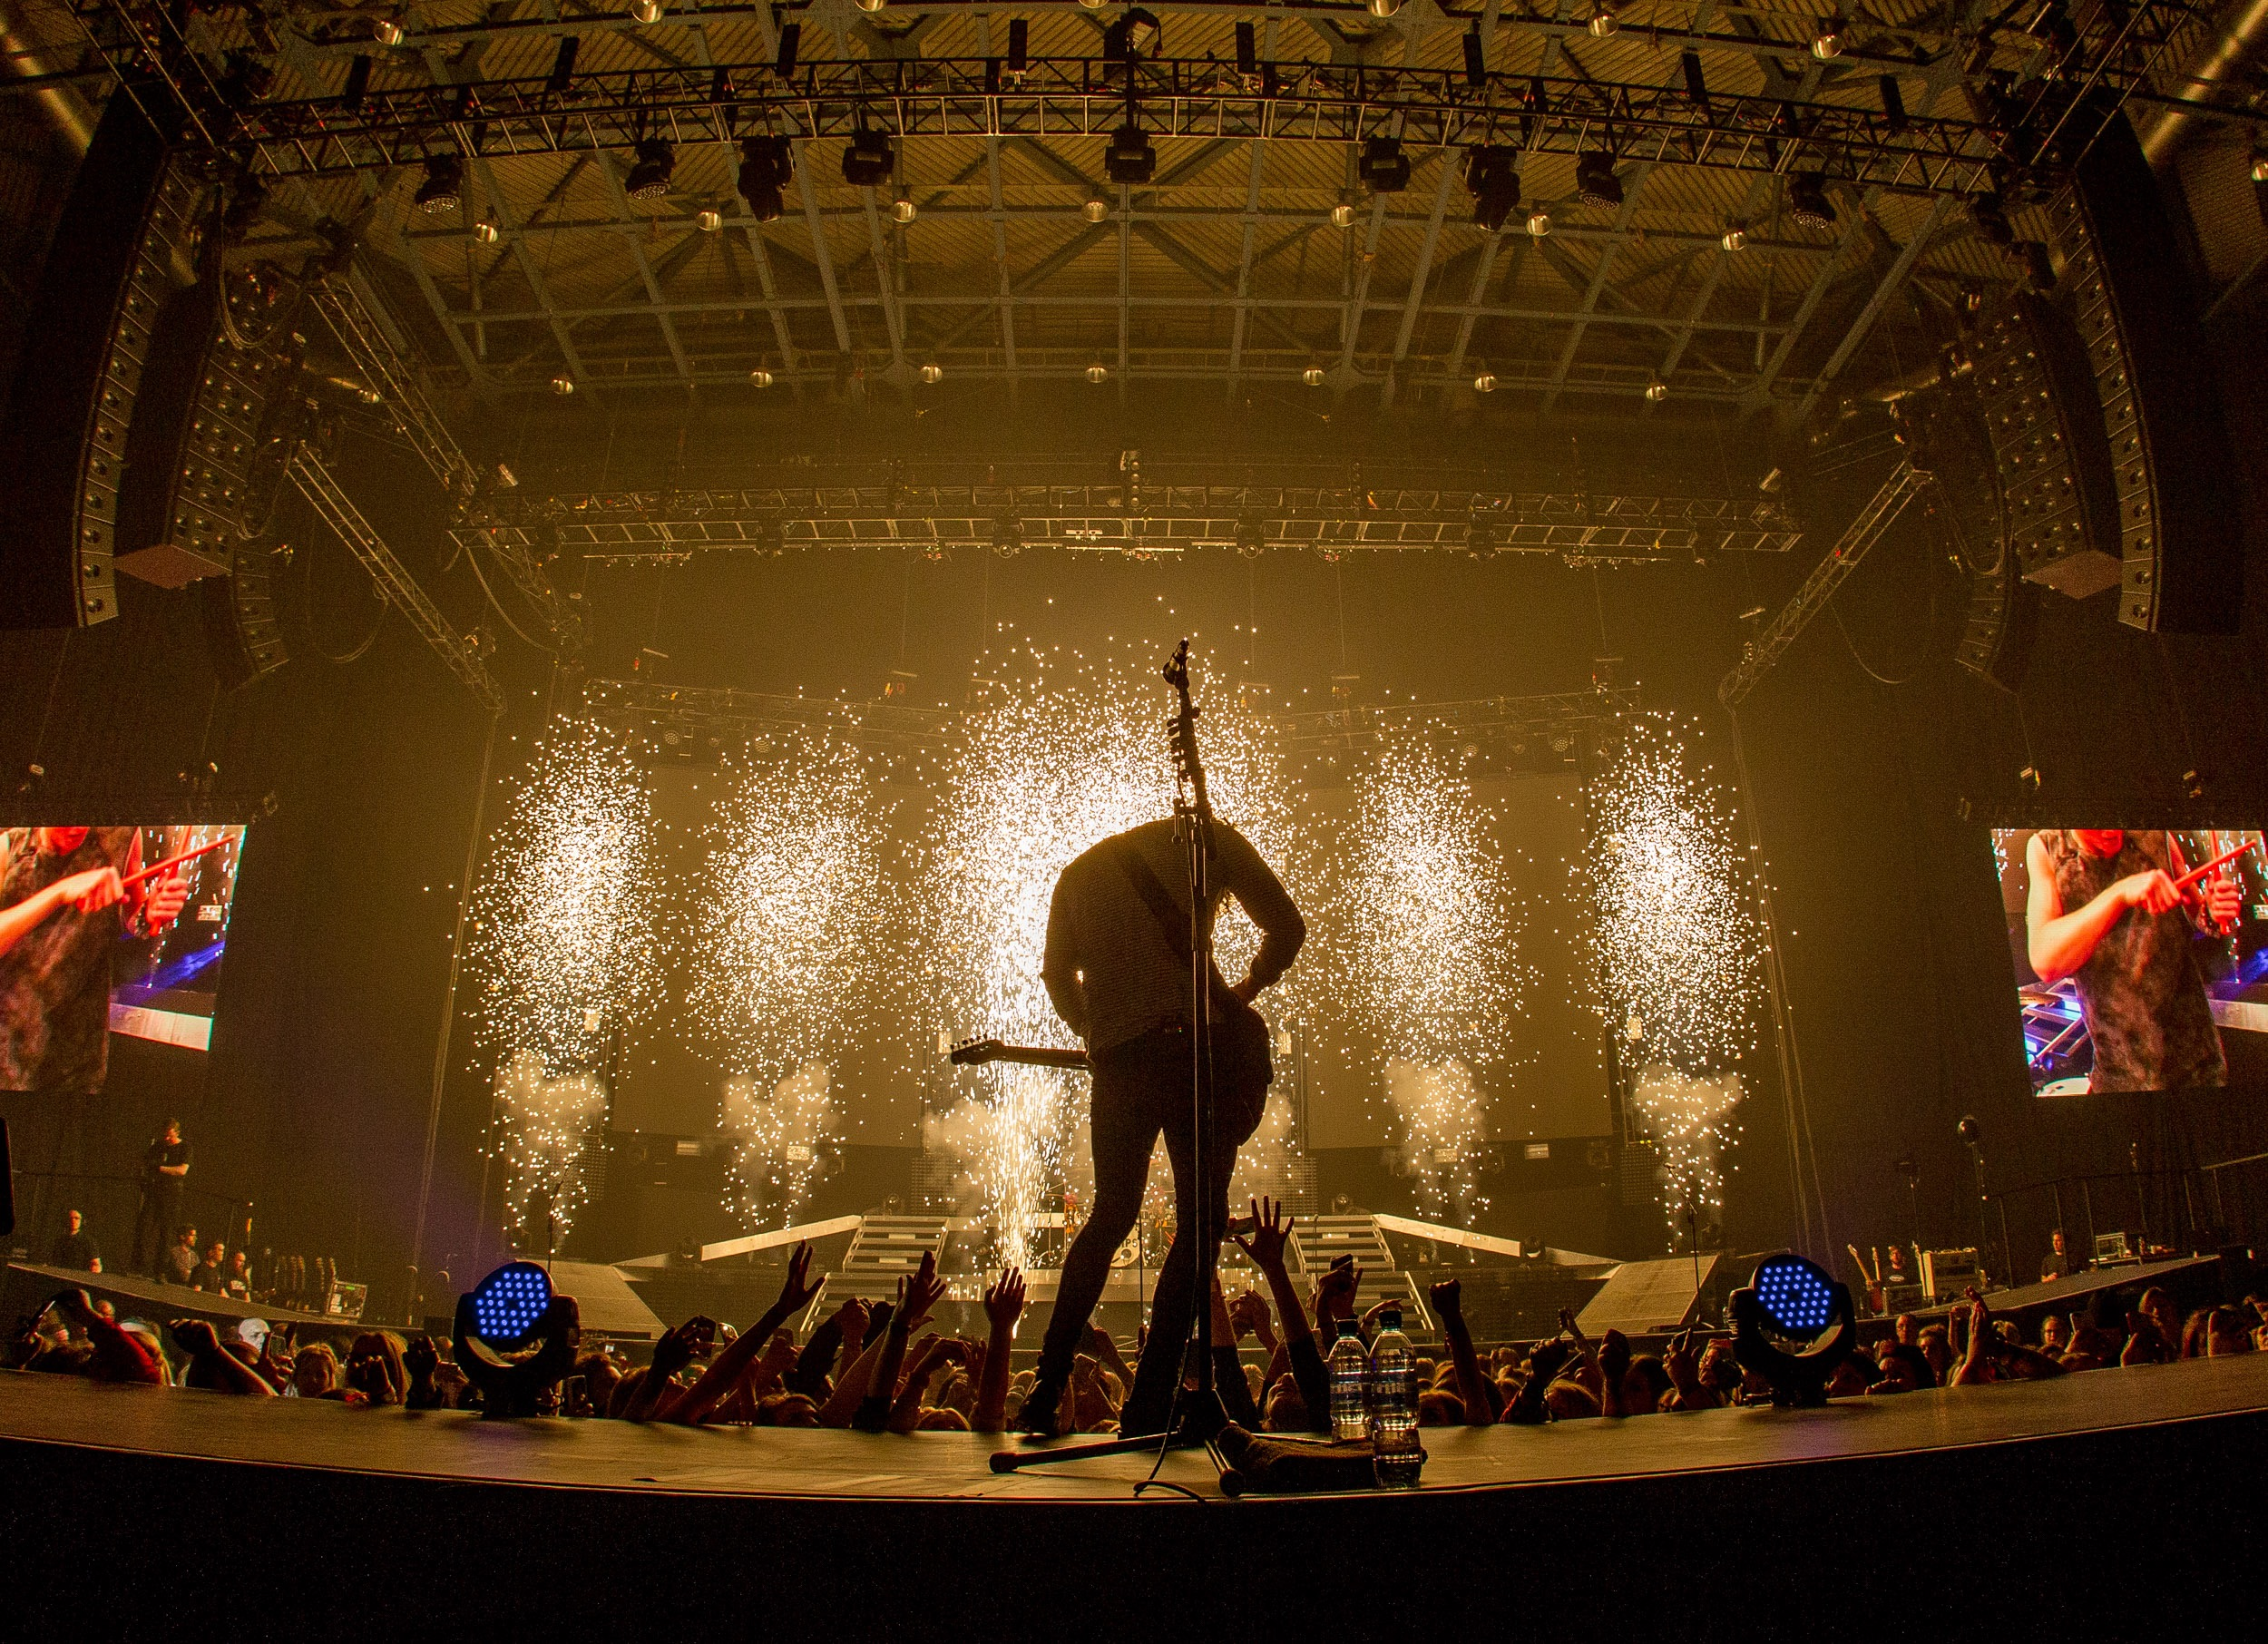 A close up of one of the stills I took at a show. Here's a silhouette of Brad at the end of Somebody To You.